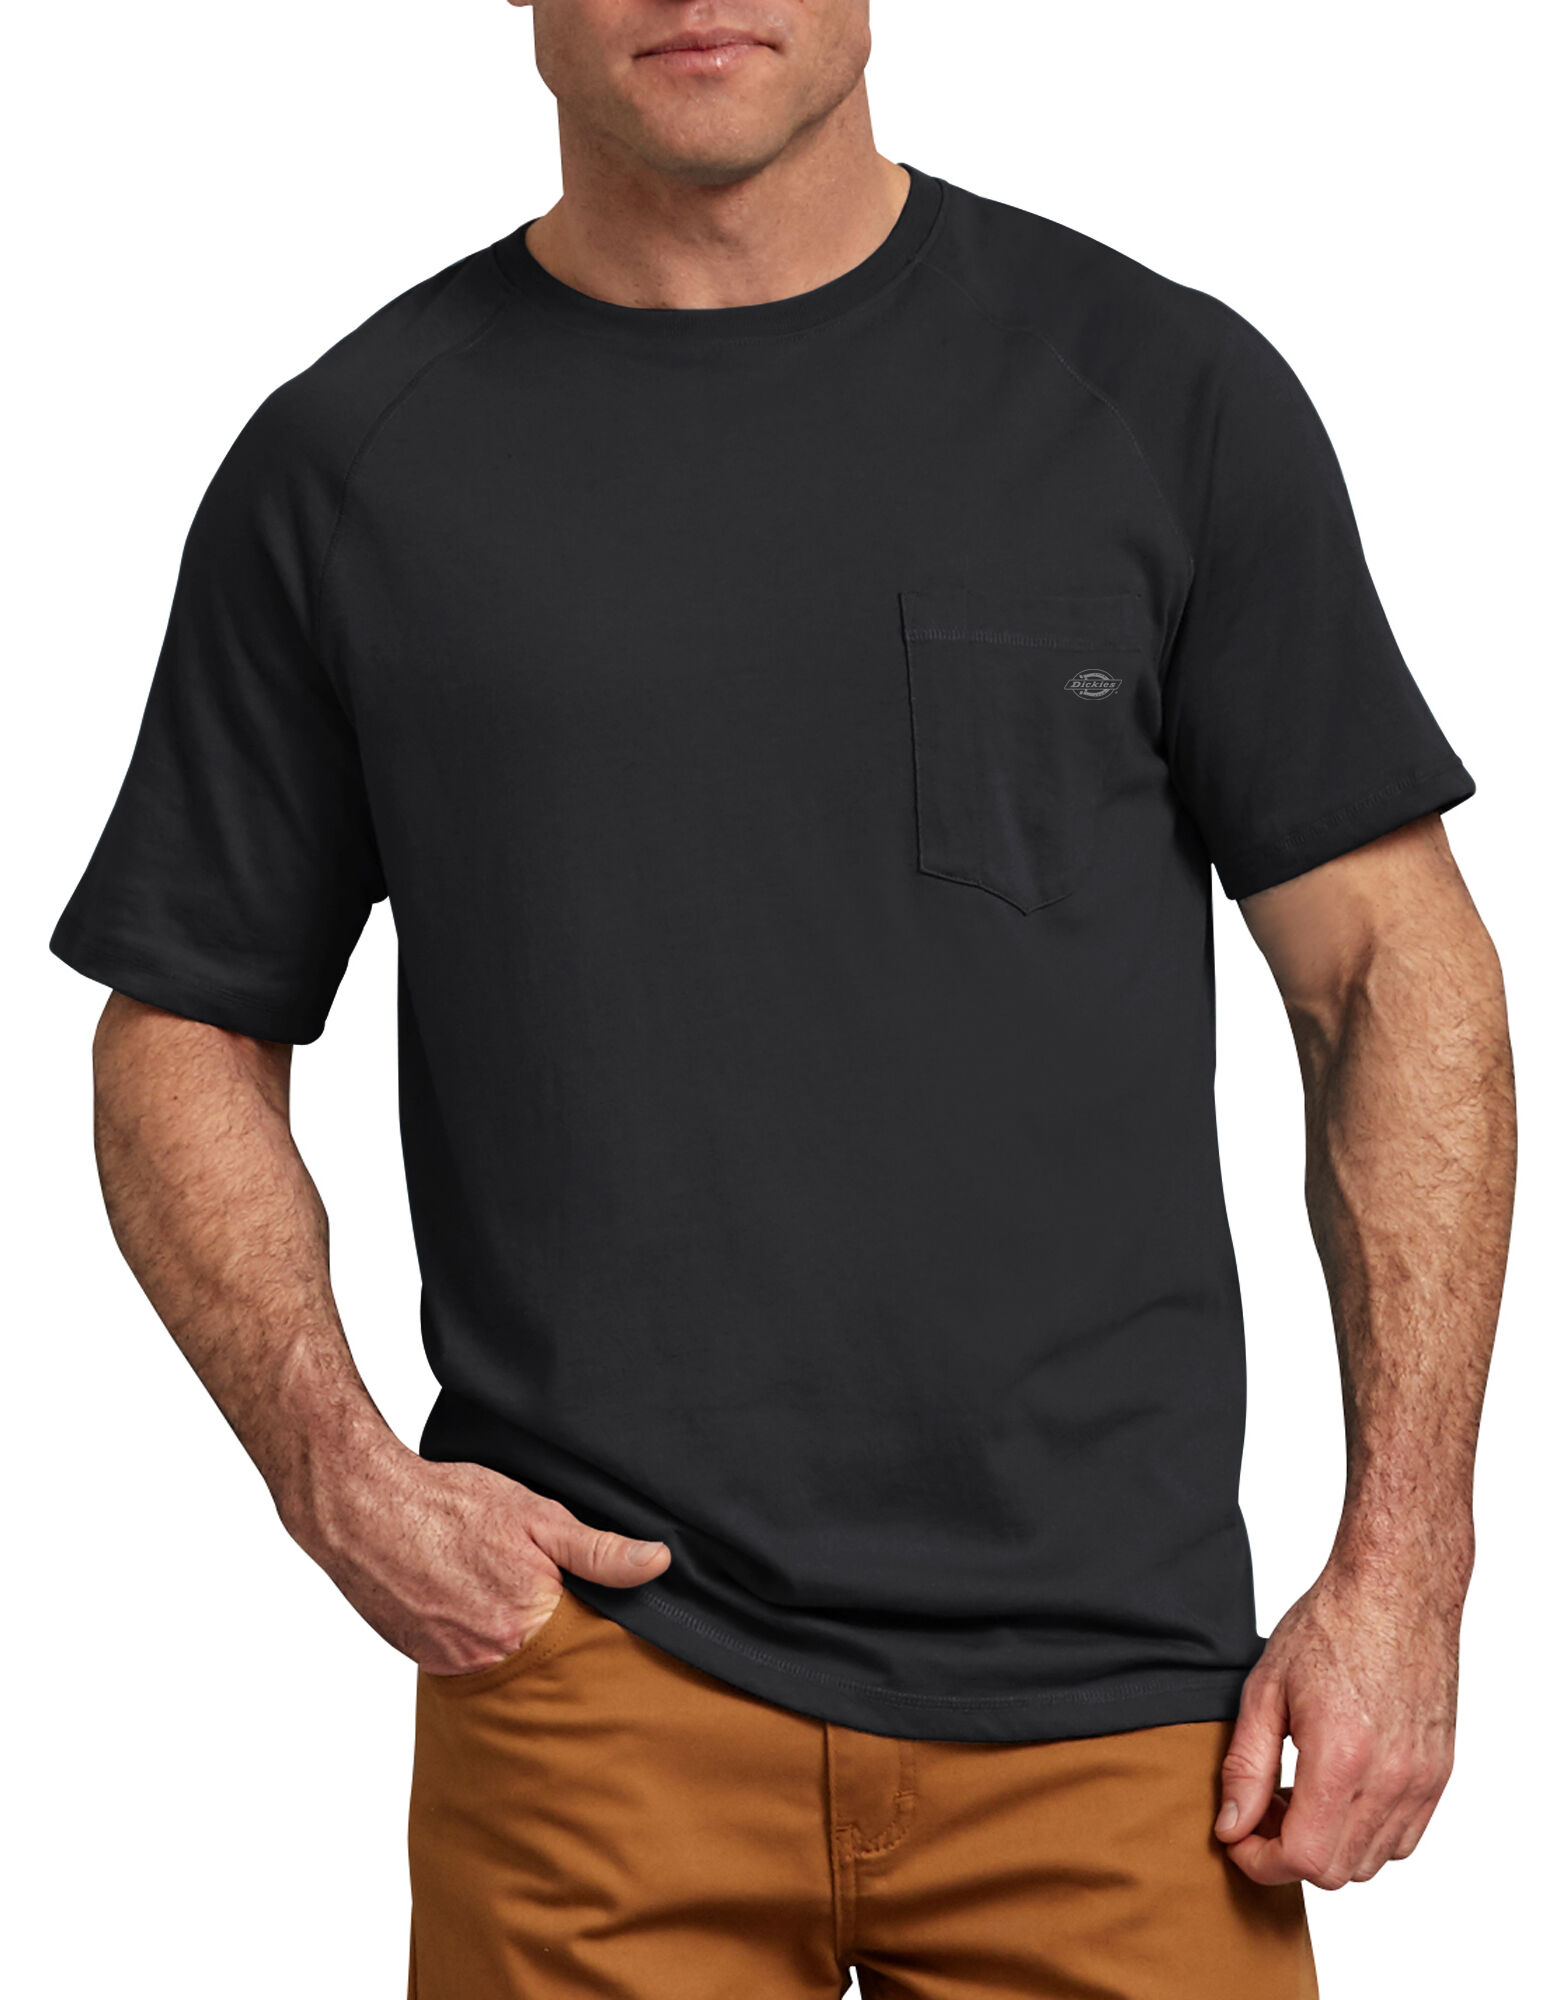 Temp iq performance cooling t shirt dickies for Successful t shirt brands